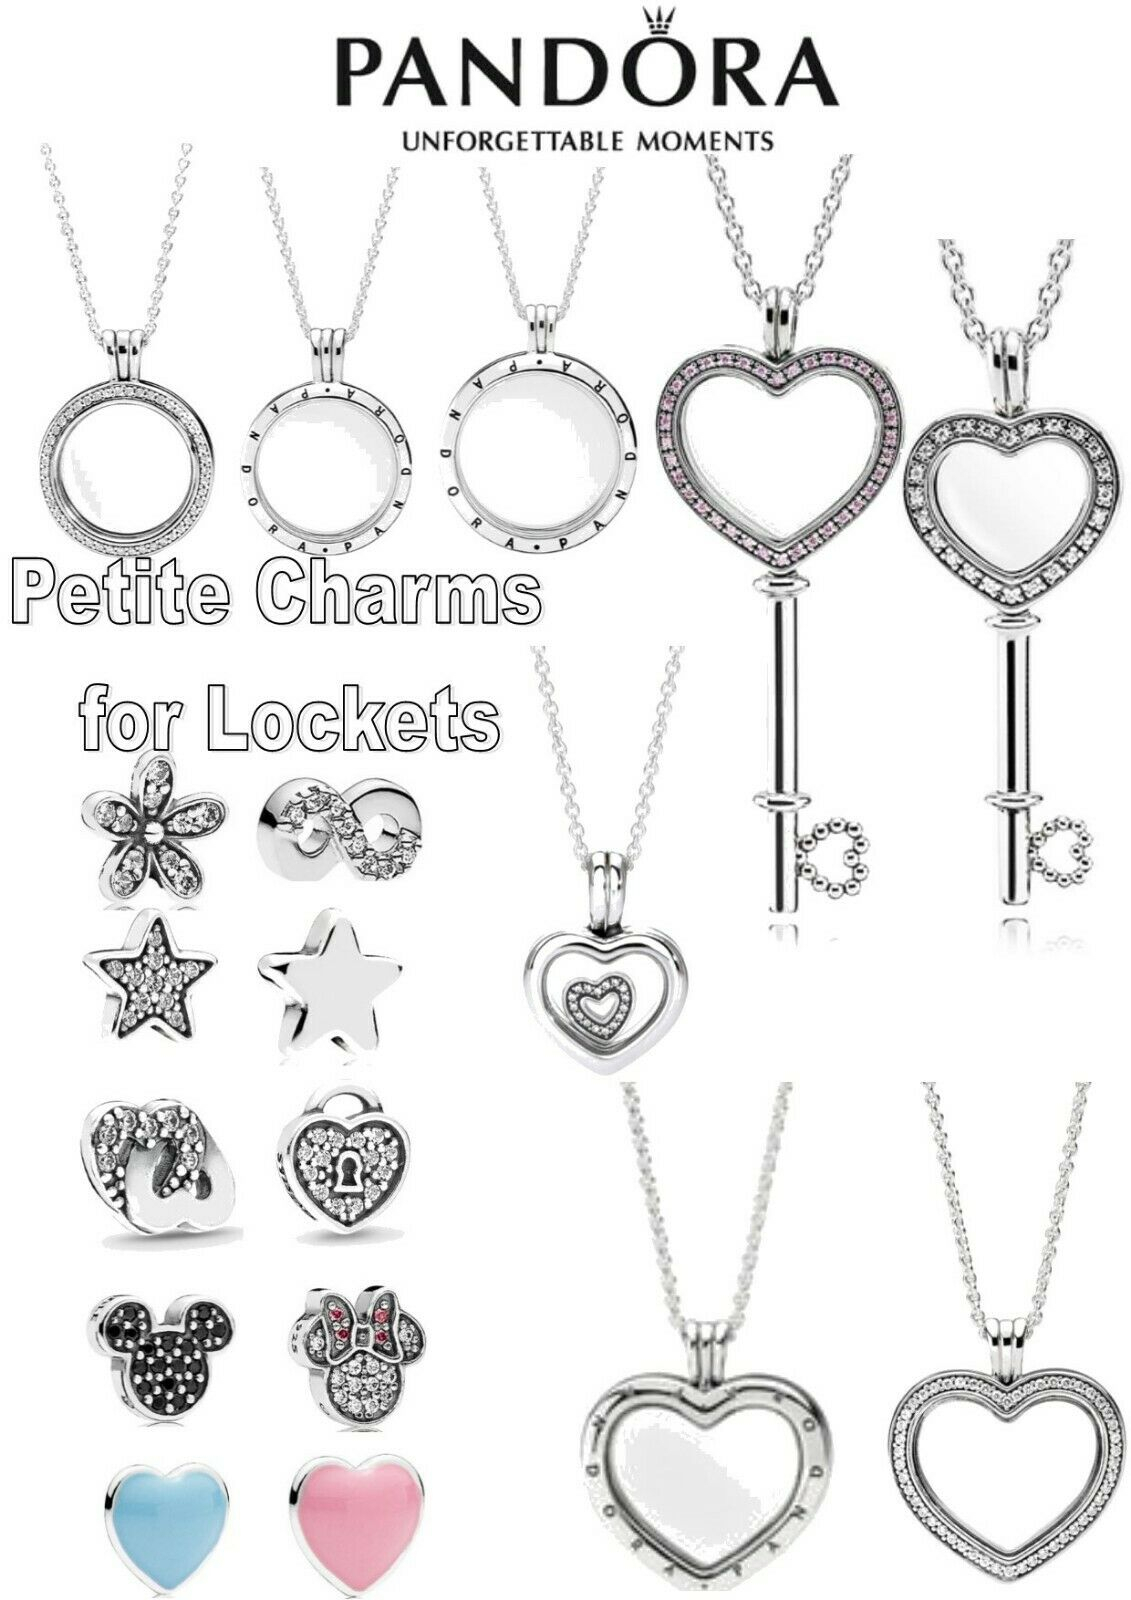 Pandora Locket Necklaces – Sold With 1 Free Petite Charm – S925 Ale Within Best And Newest Pandora Lockets Logo Necklaces (View 15 of 25)